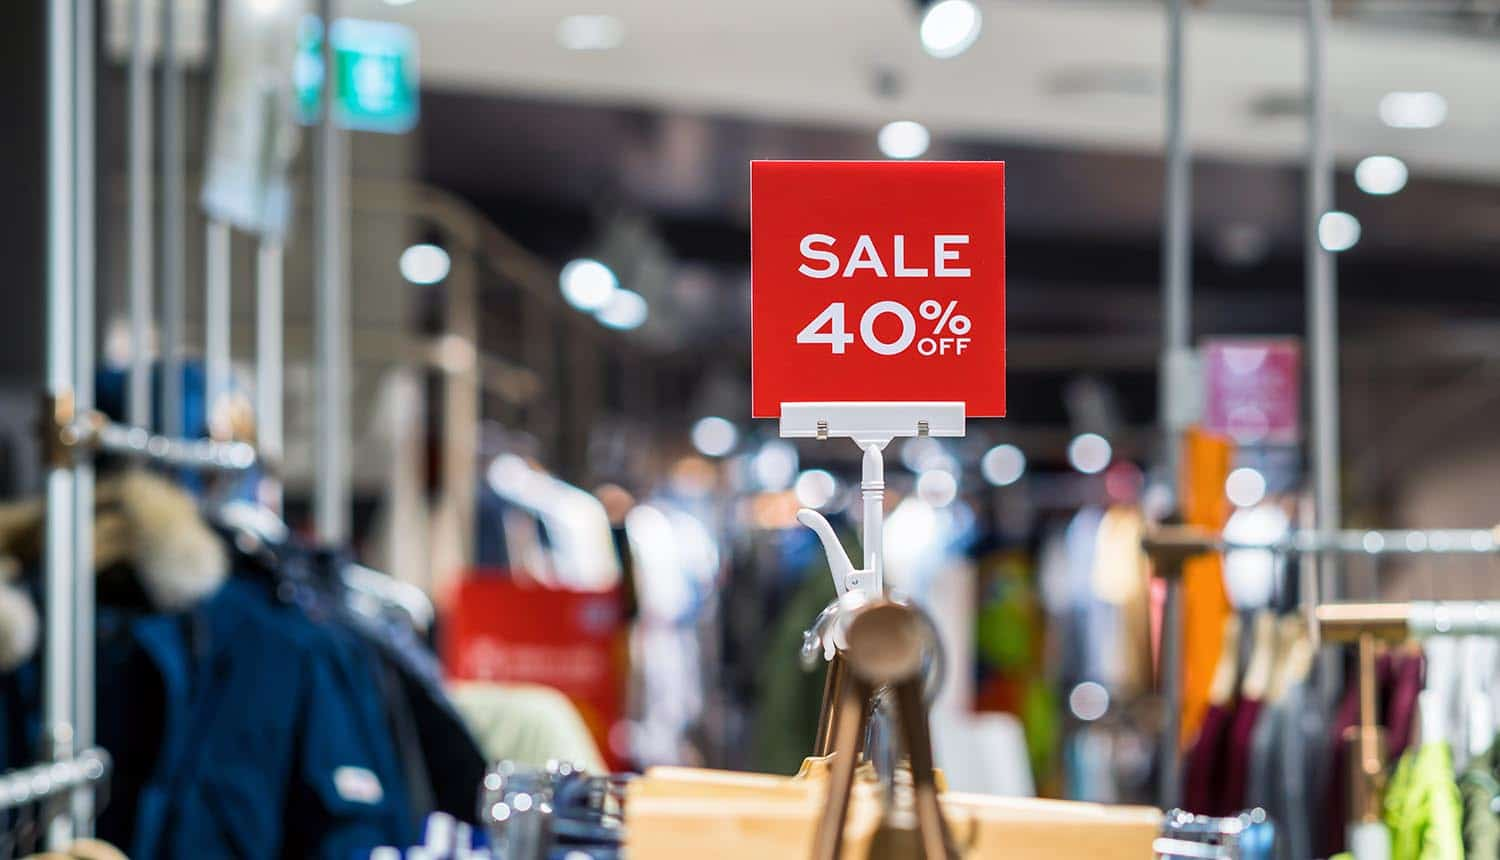 Department store for fashion showing online threats during holiday shopping season